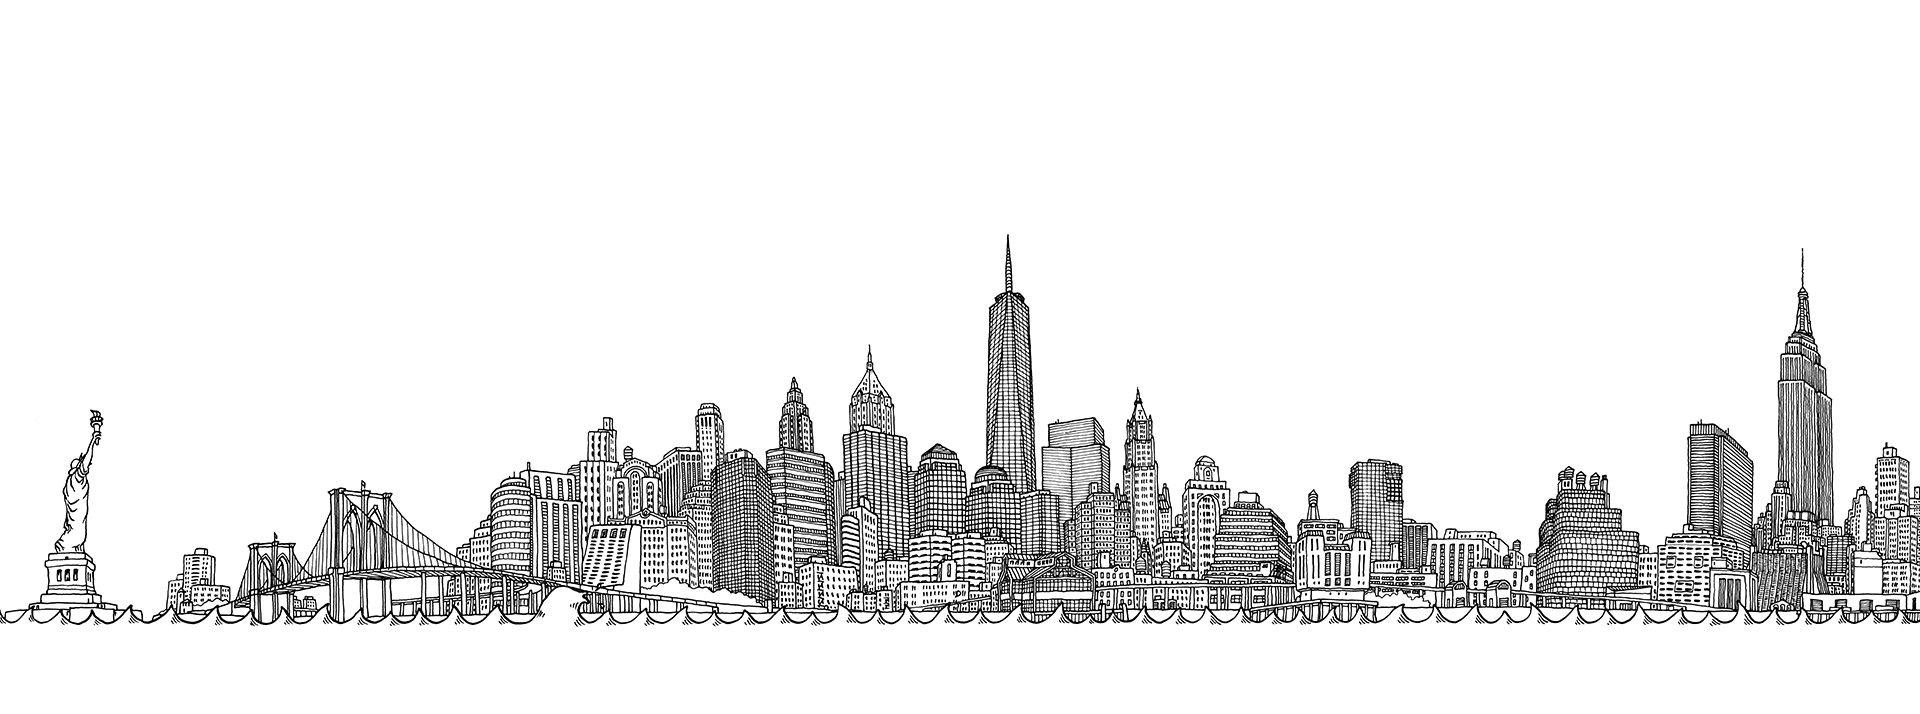 Matteo-Pericoli-Imaginary Skyline Manhattan